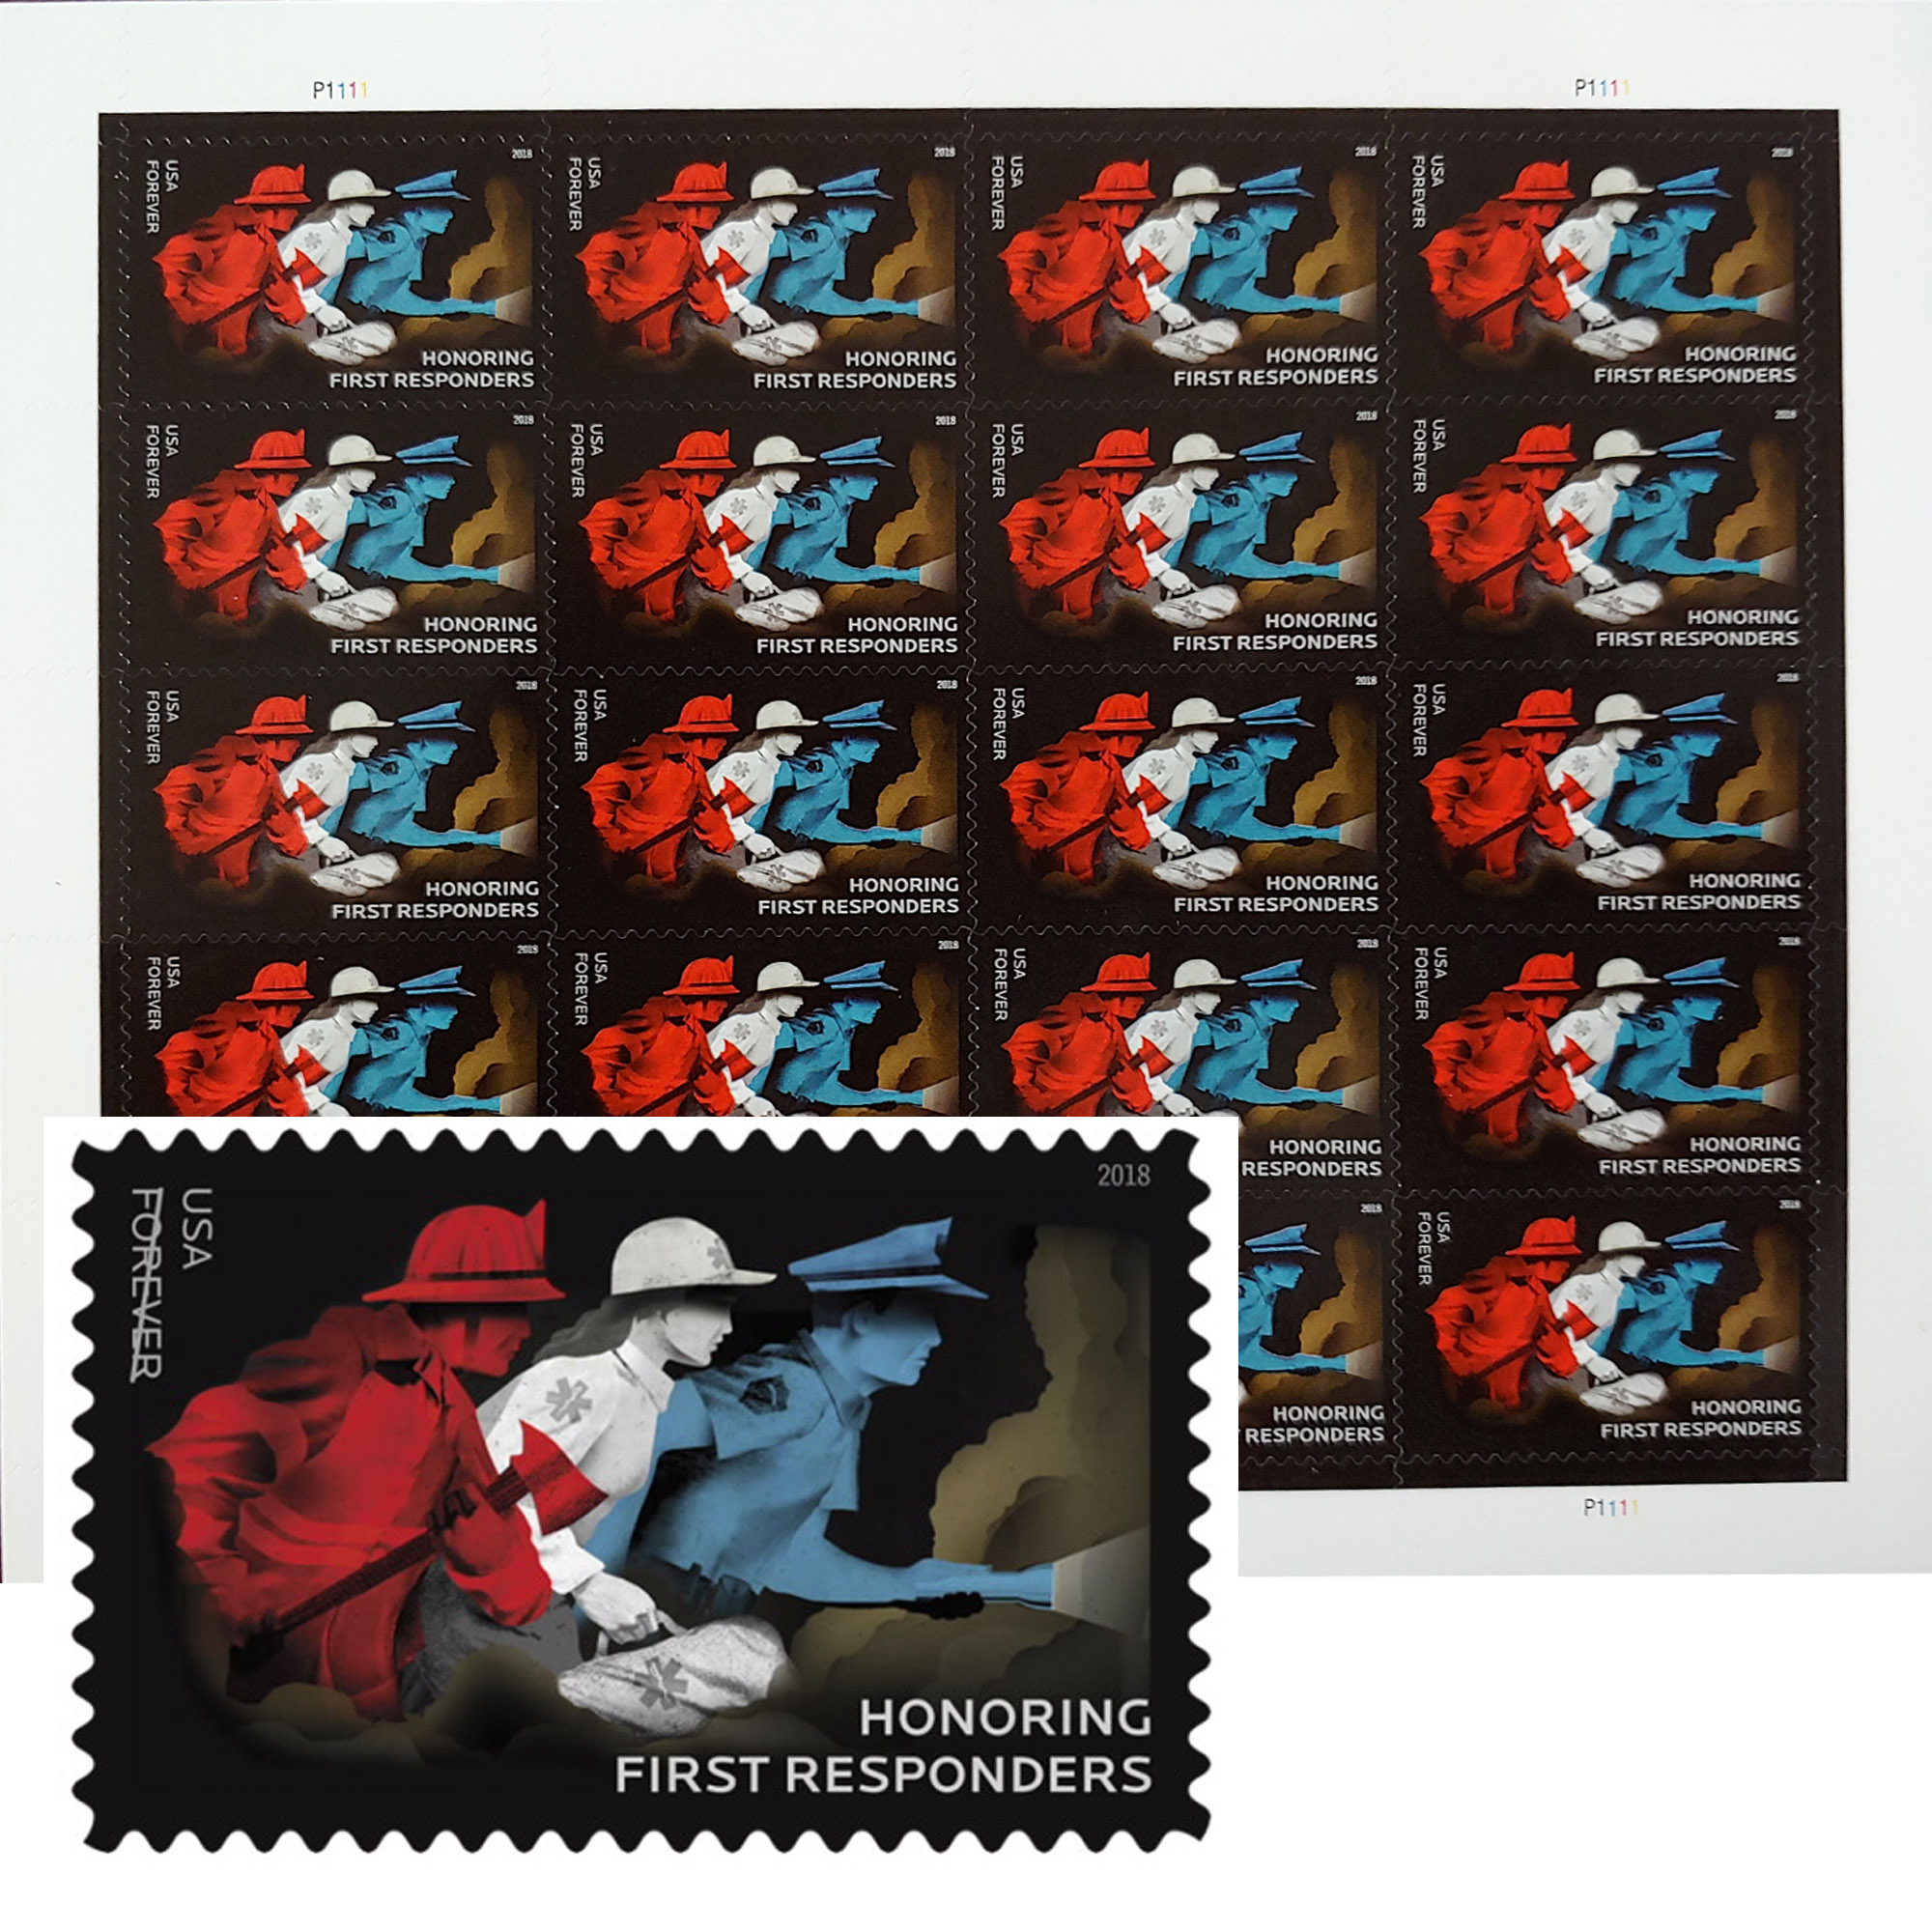 Honoring First Responders 1 Sheet of 20 Forever USPS First Class Postage Stamps Hero Police Fire Fighter EMT Doctors Nurses (20 Stamps)